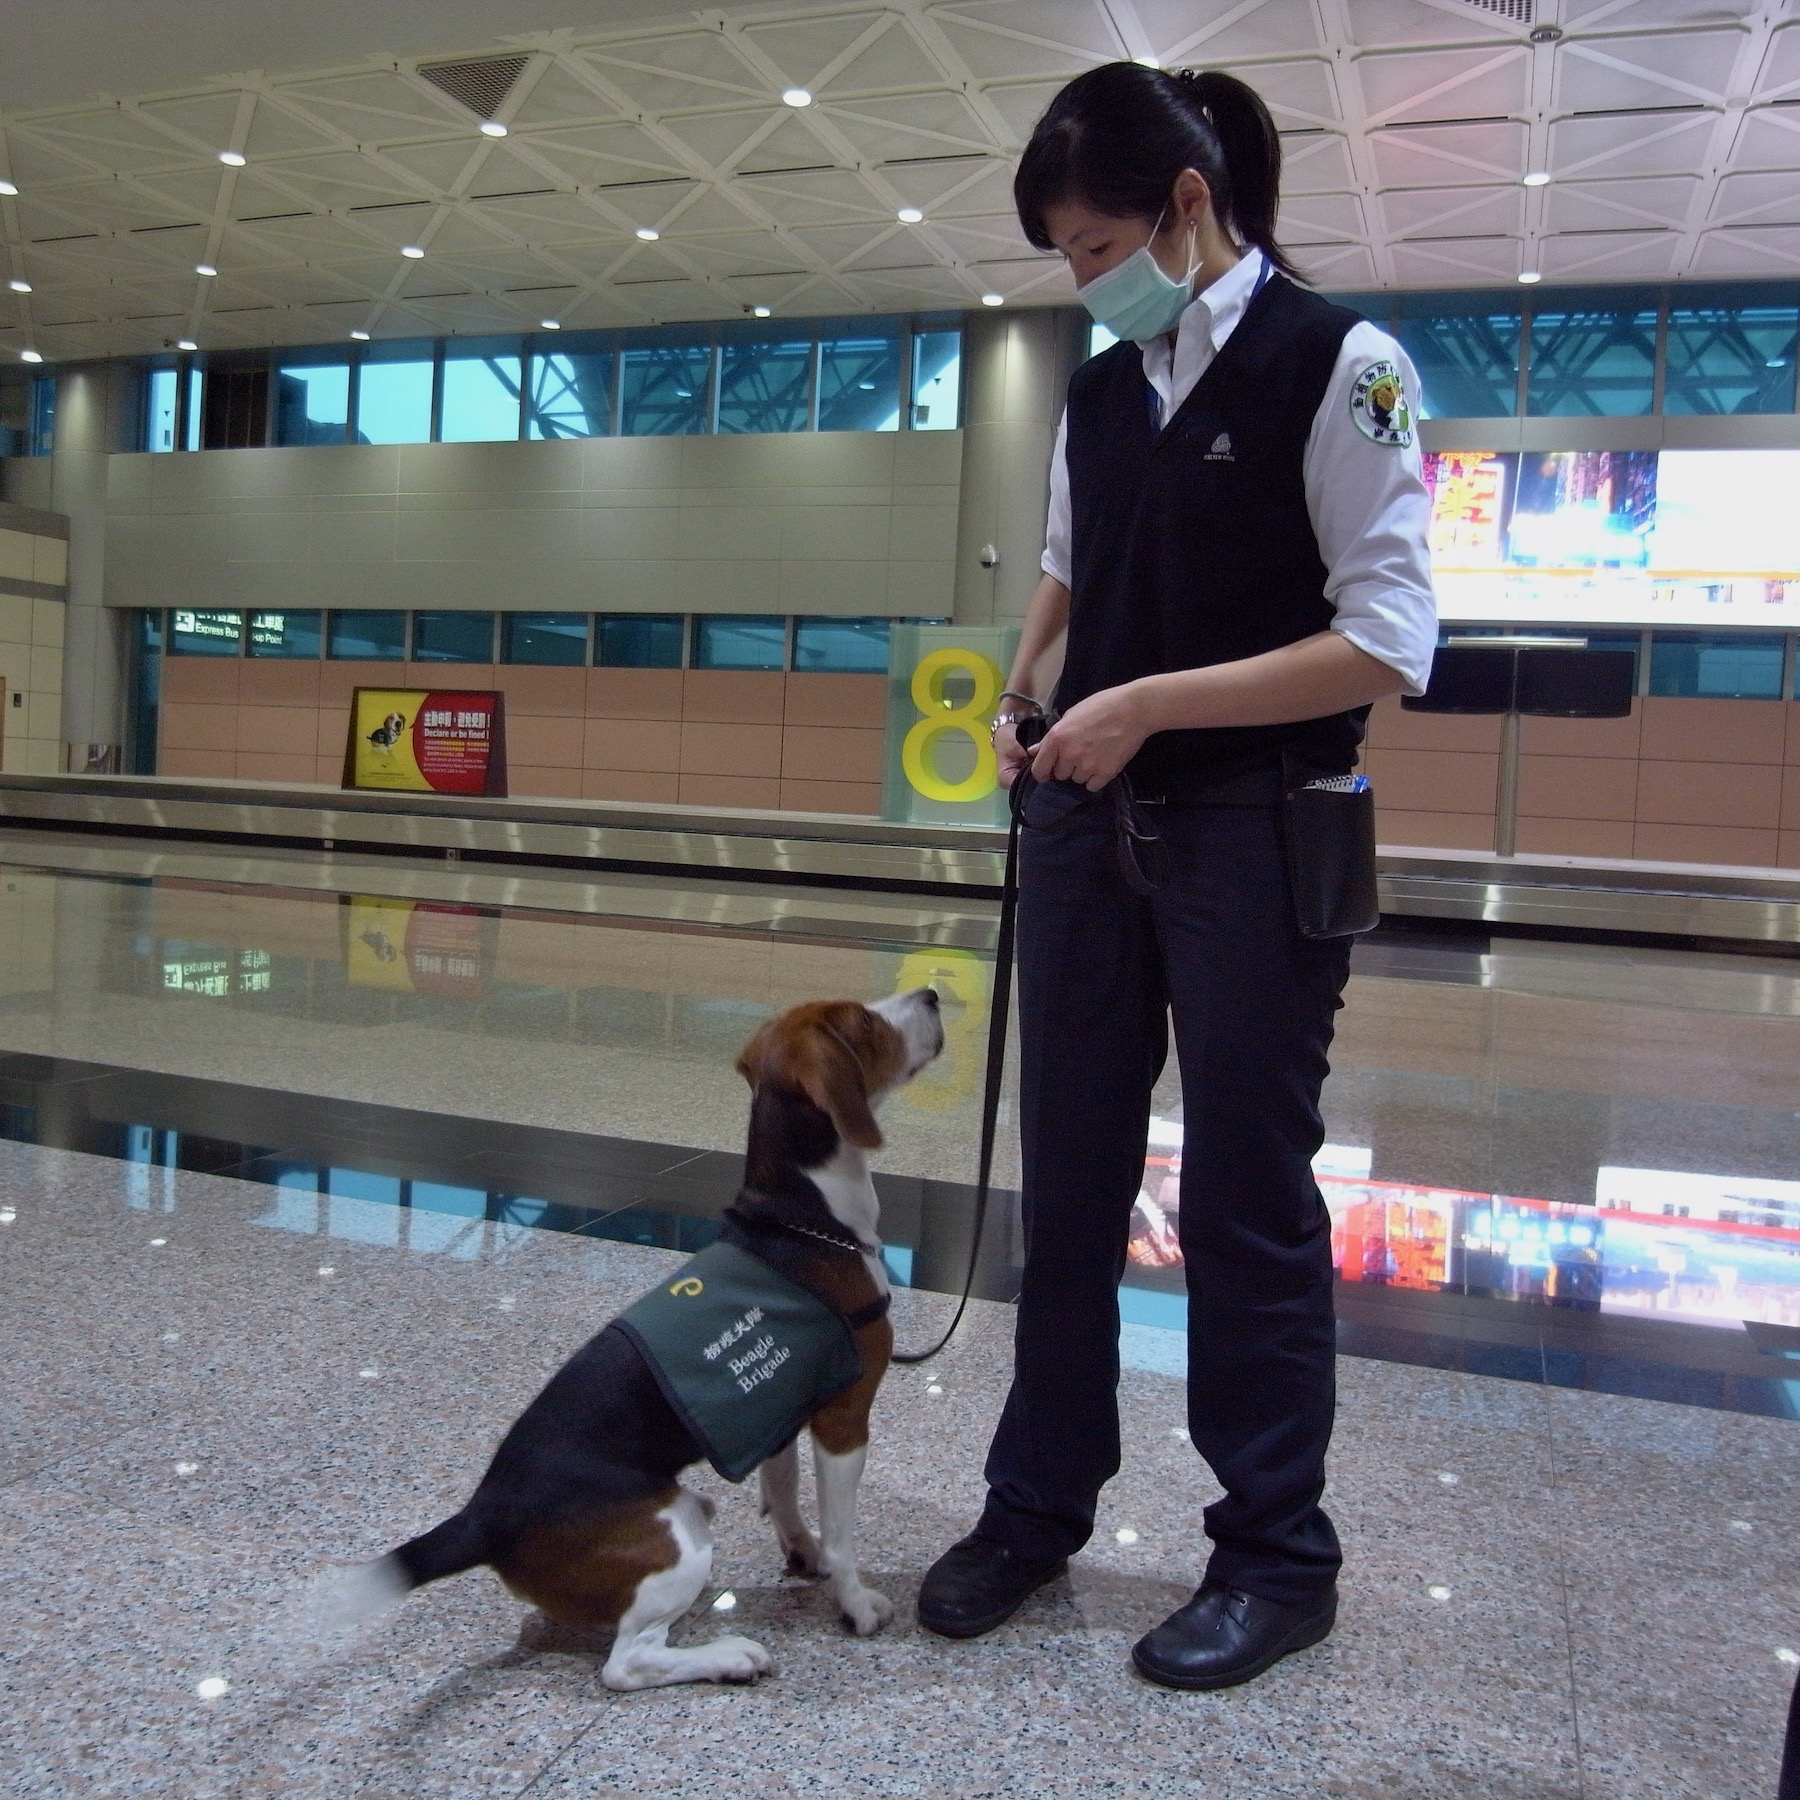 Airport Sniffer Dog on Duty